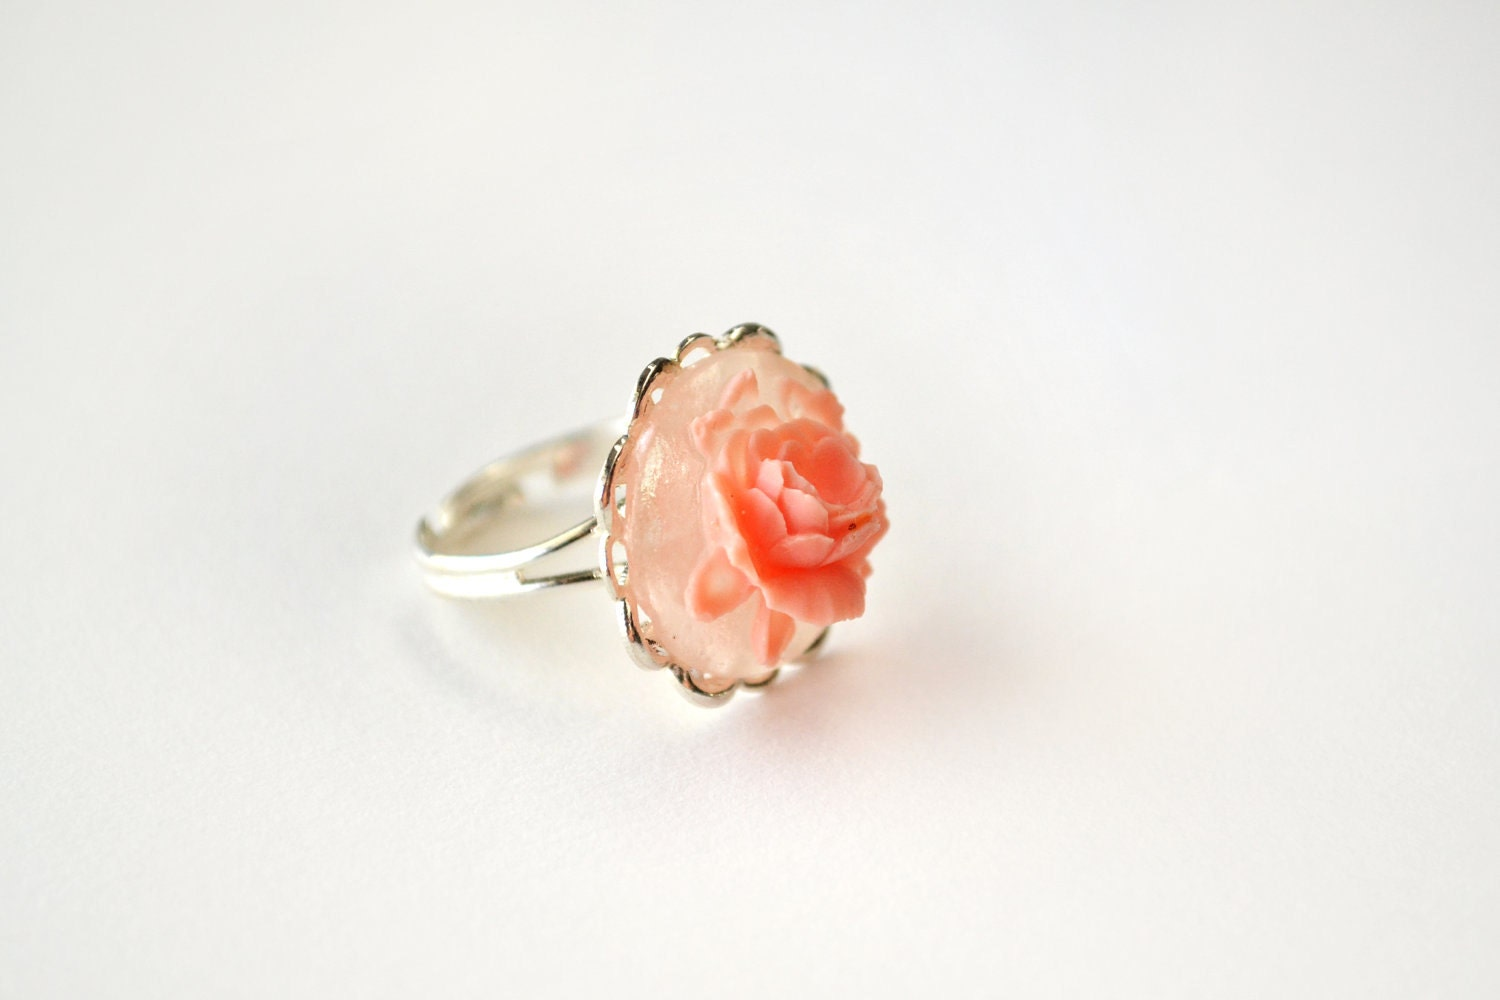 01 The Nora: coral rose cabochon ring on silver filigree adjustable band